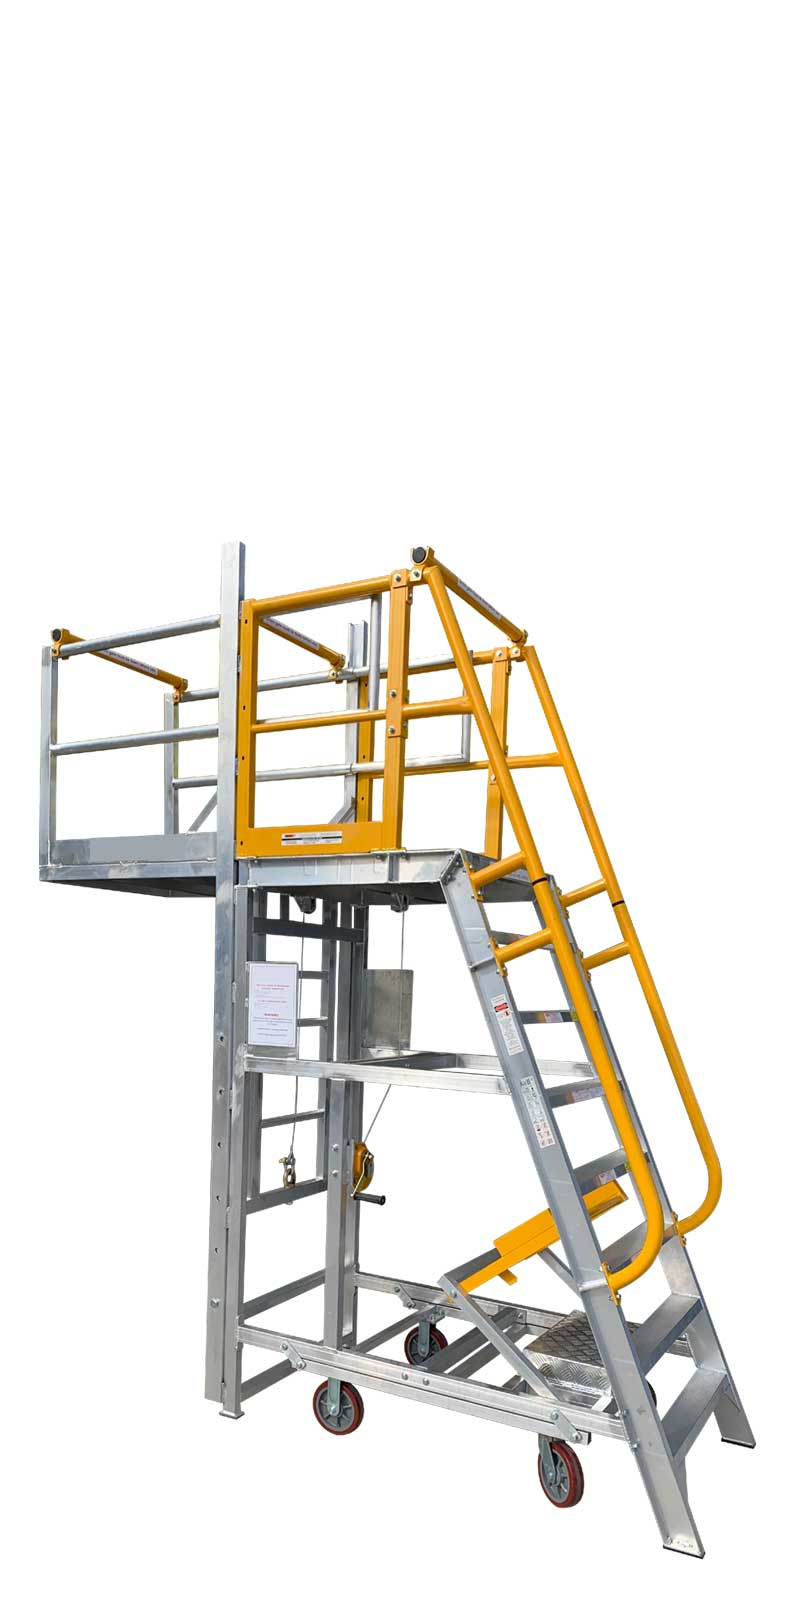 ADJP1400 Adjustable Cantilever Work platform